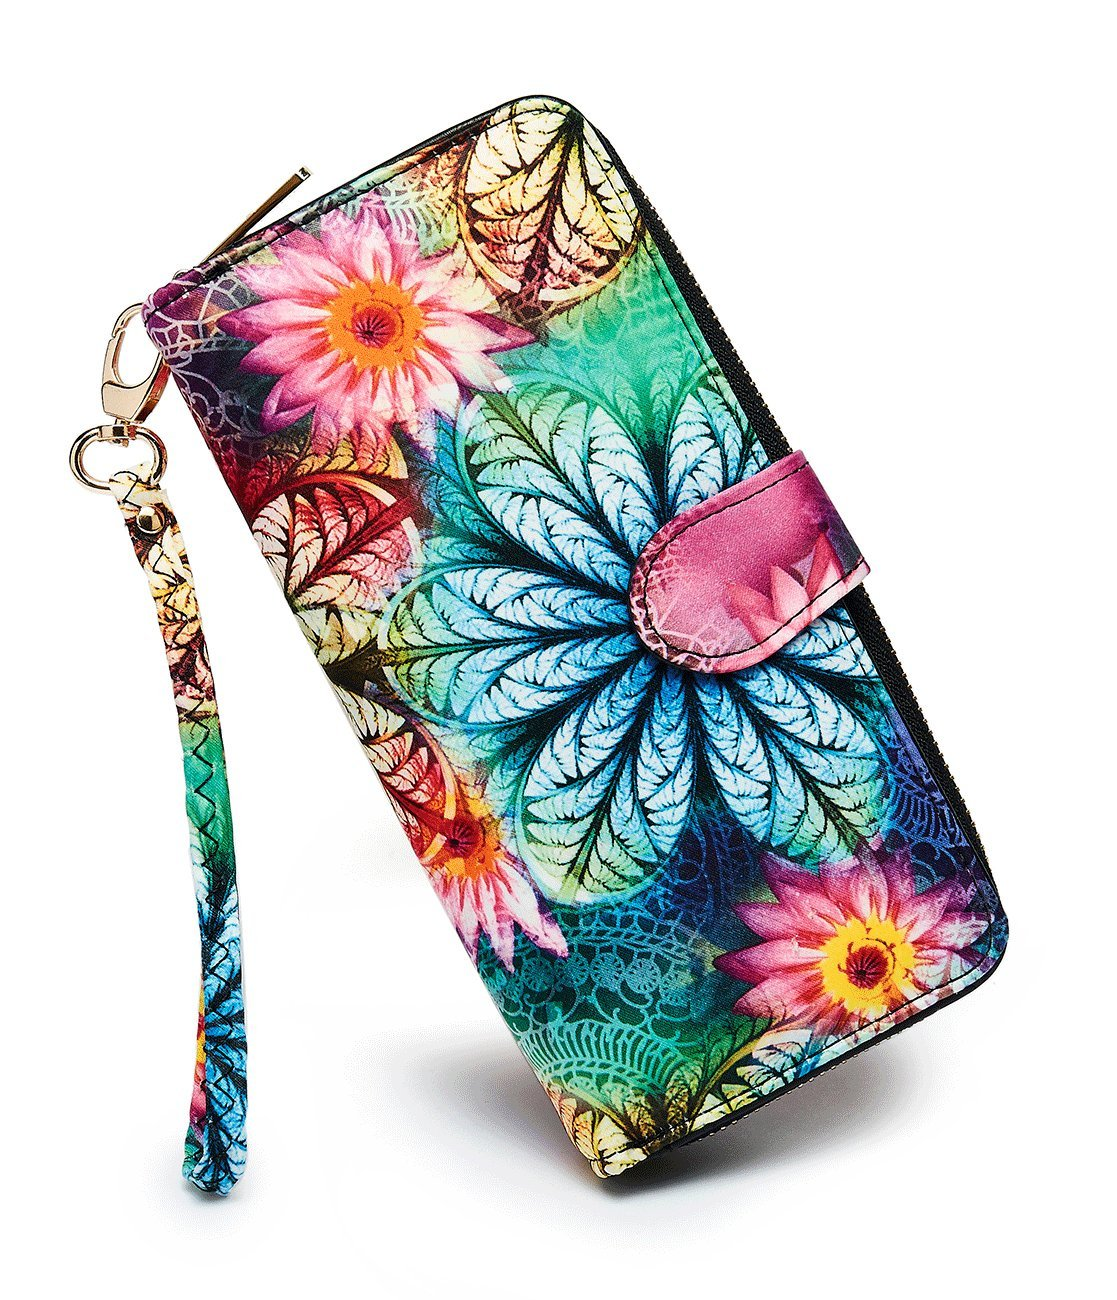 LOVESHE,bohemian style,bohemian style sound workmanship function pockets beautiful design Almost Blue Wallets outer material special gifts wristlets wallets,bohemian style by LOVESHE